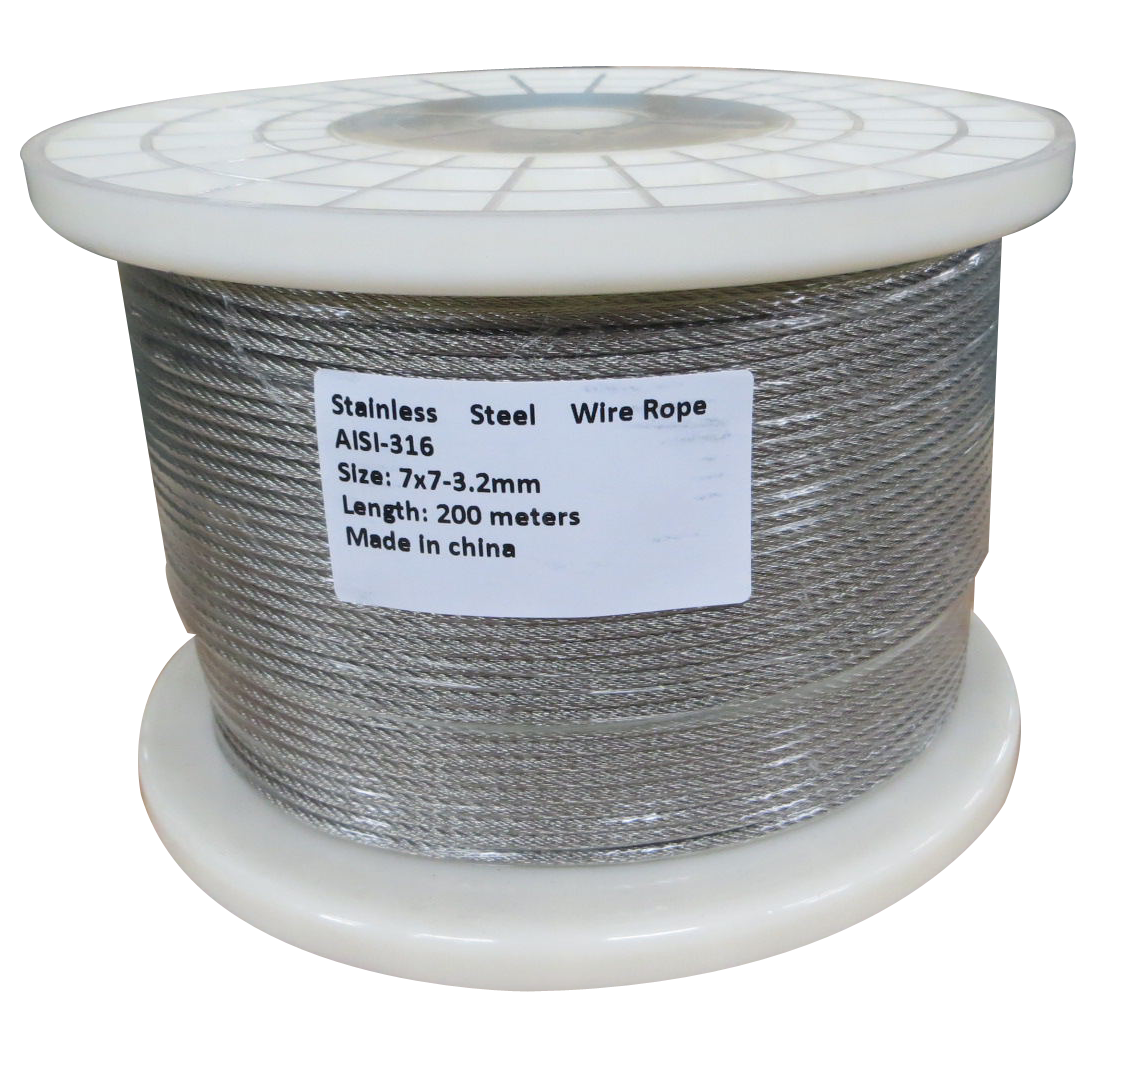 200M G316 STAINLESS STEEL WIRE ROPE 3.2MM BALUSTRADE  Z2574